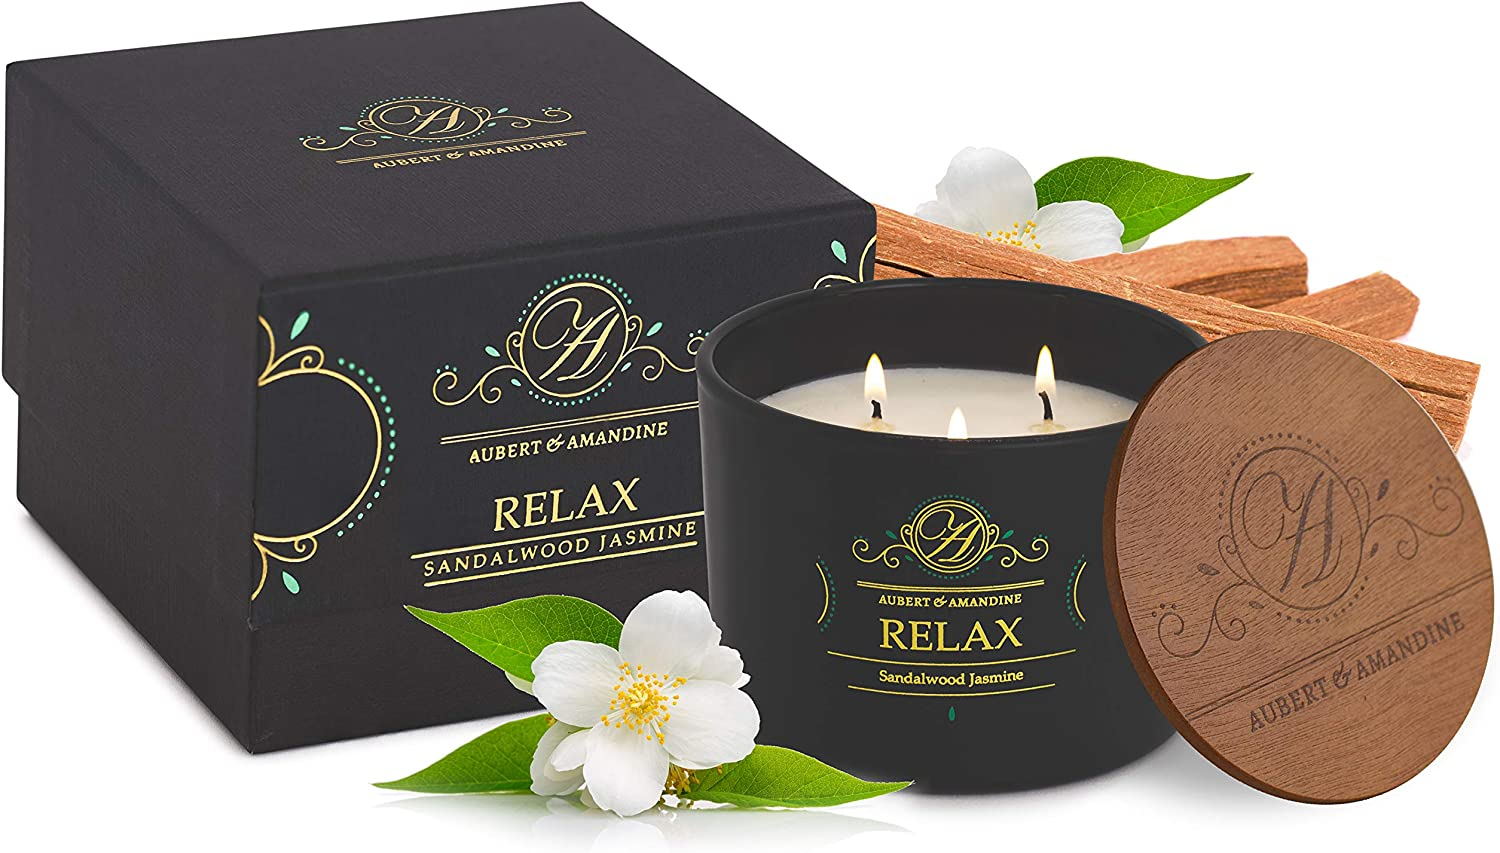 Luxury Scented Soy 3 Wick Candle for Stress Relief & Relaxation High Intensity Aromatherapy (Relax - Sandalwood Jasmine Candle)